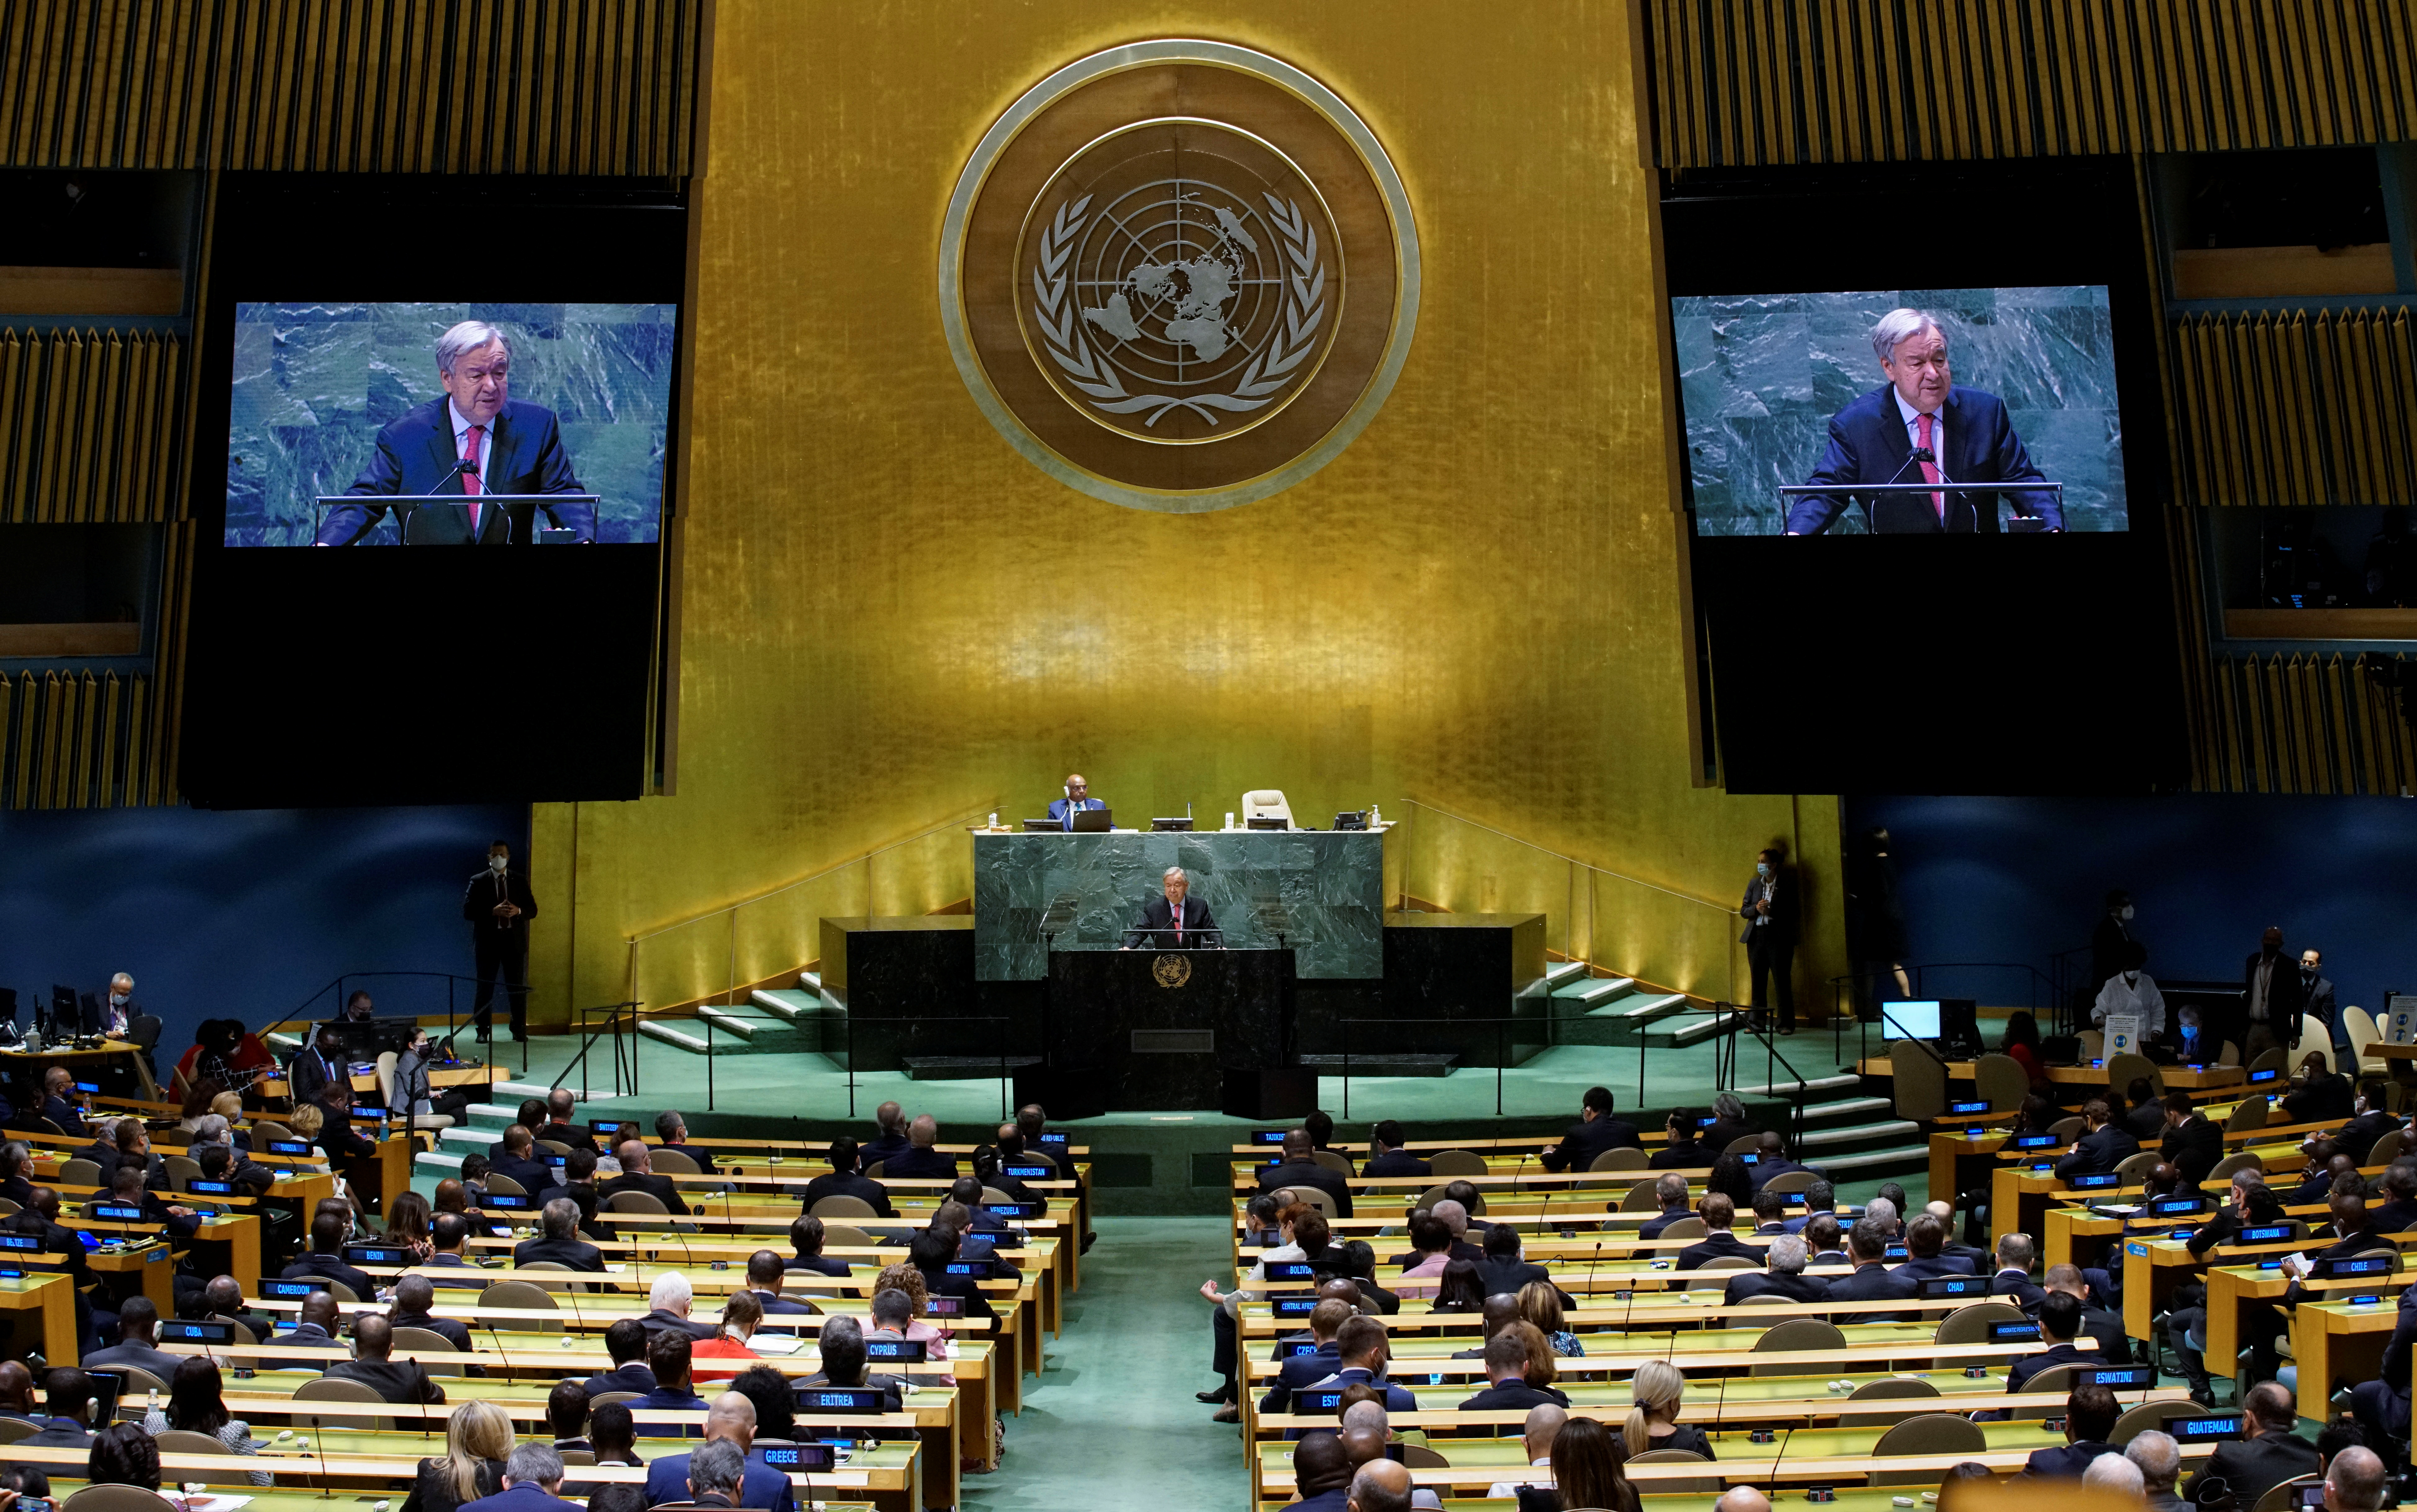 Vietnamese president attends general debate of United NationsGeneral Assembly in New York